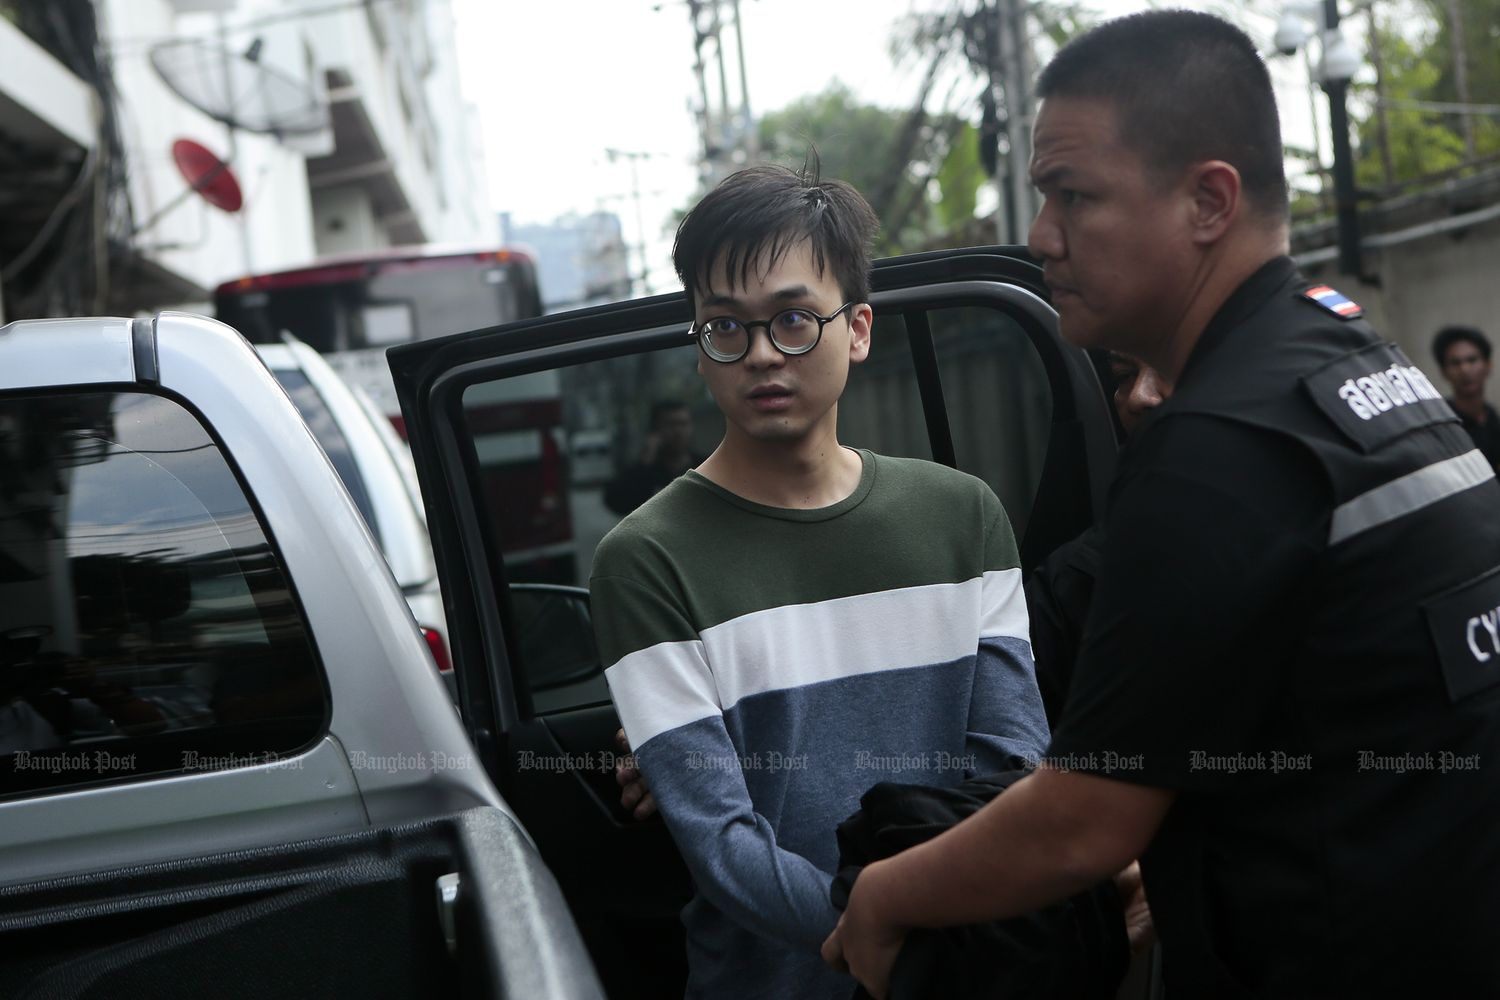 Karn Pongpraphapan, a pro-election activist, is brought to the Criminal Court in Bangkok as police seek to detain him on computer crime charges involving national security. (Photo by Patipat Janthong)